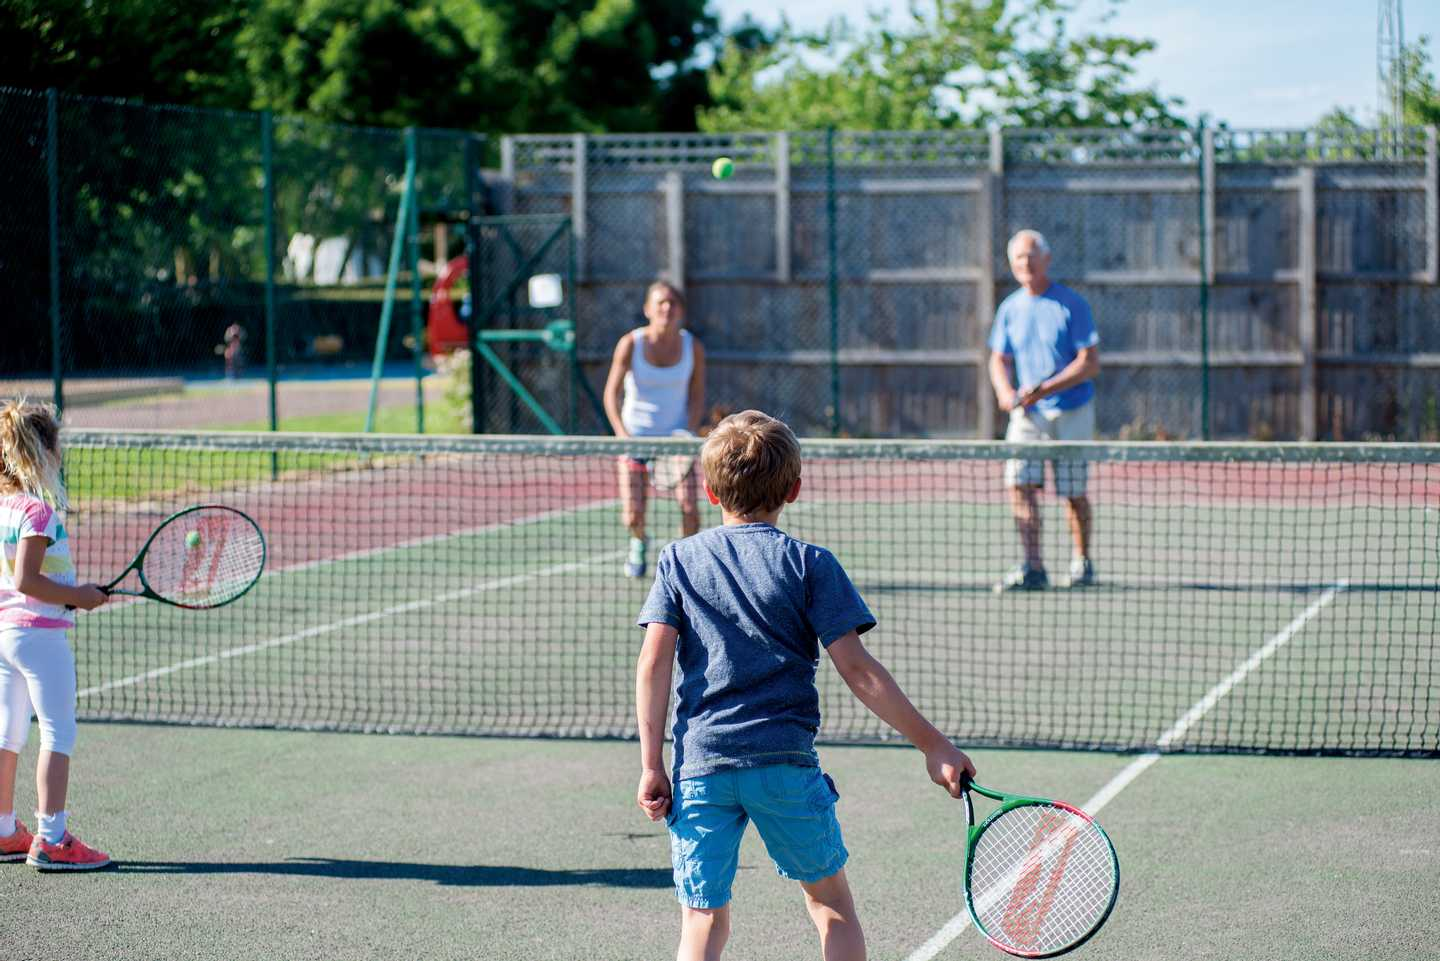 Family playing tennis on out tennis courts